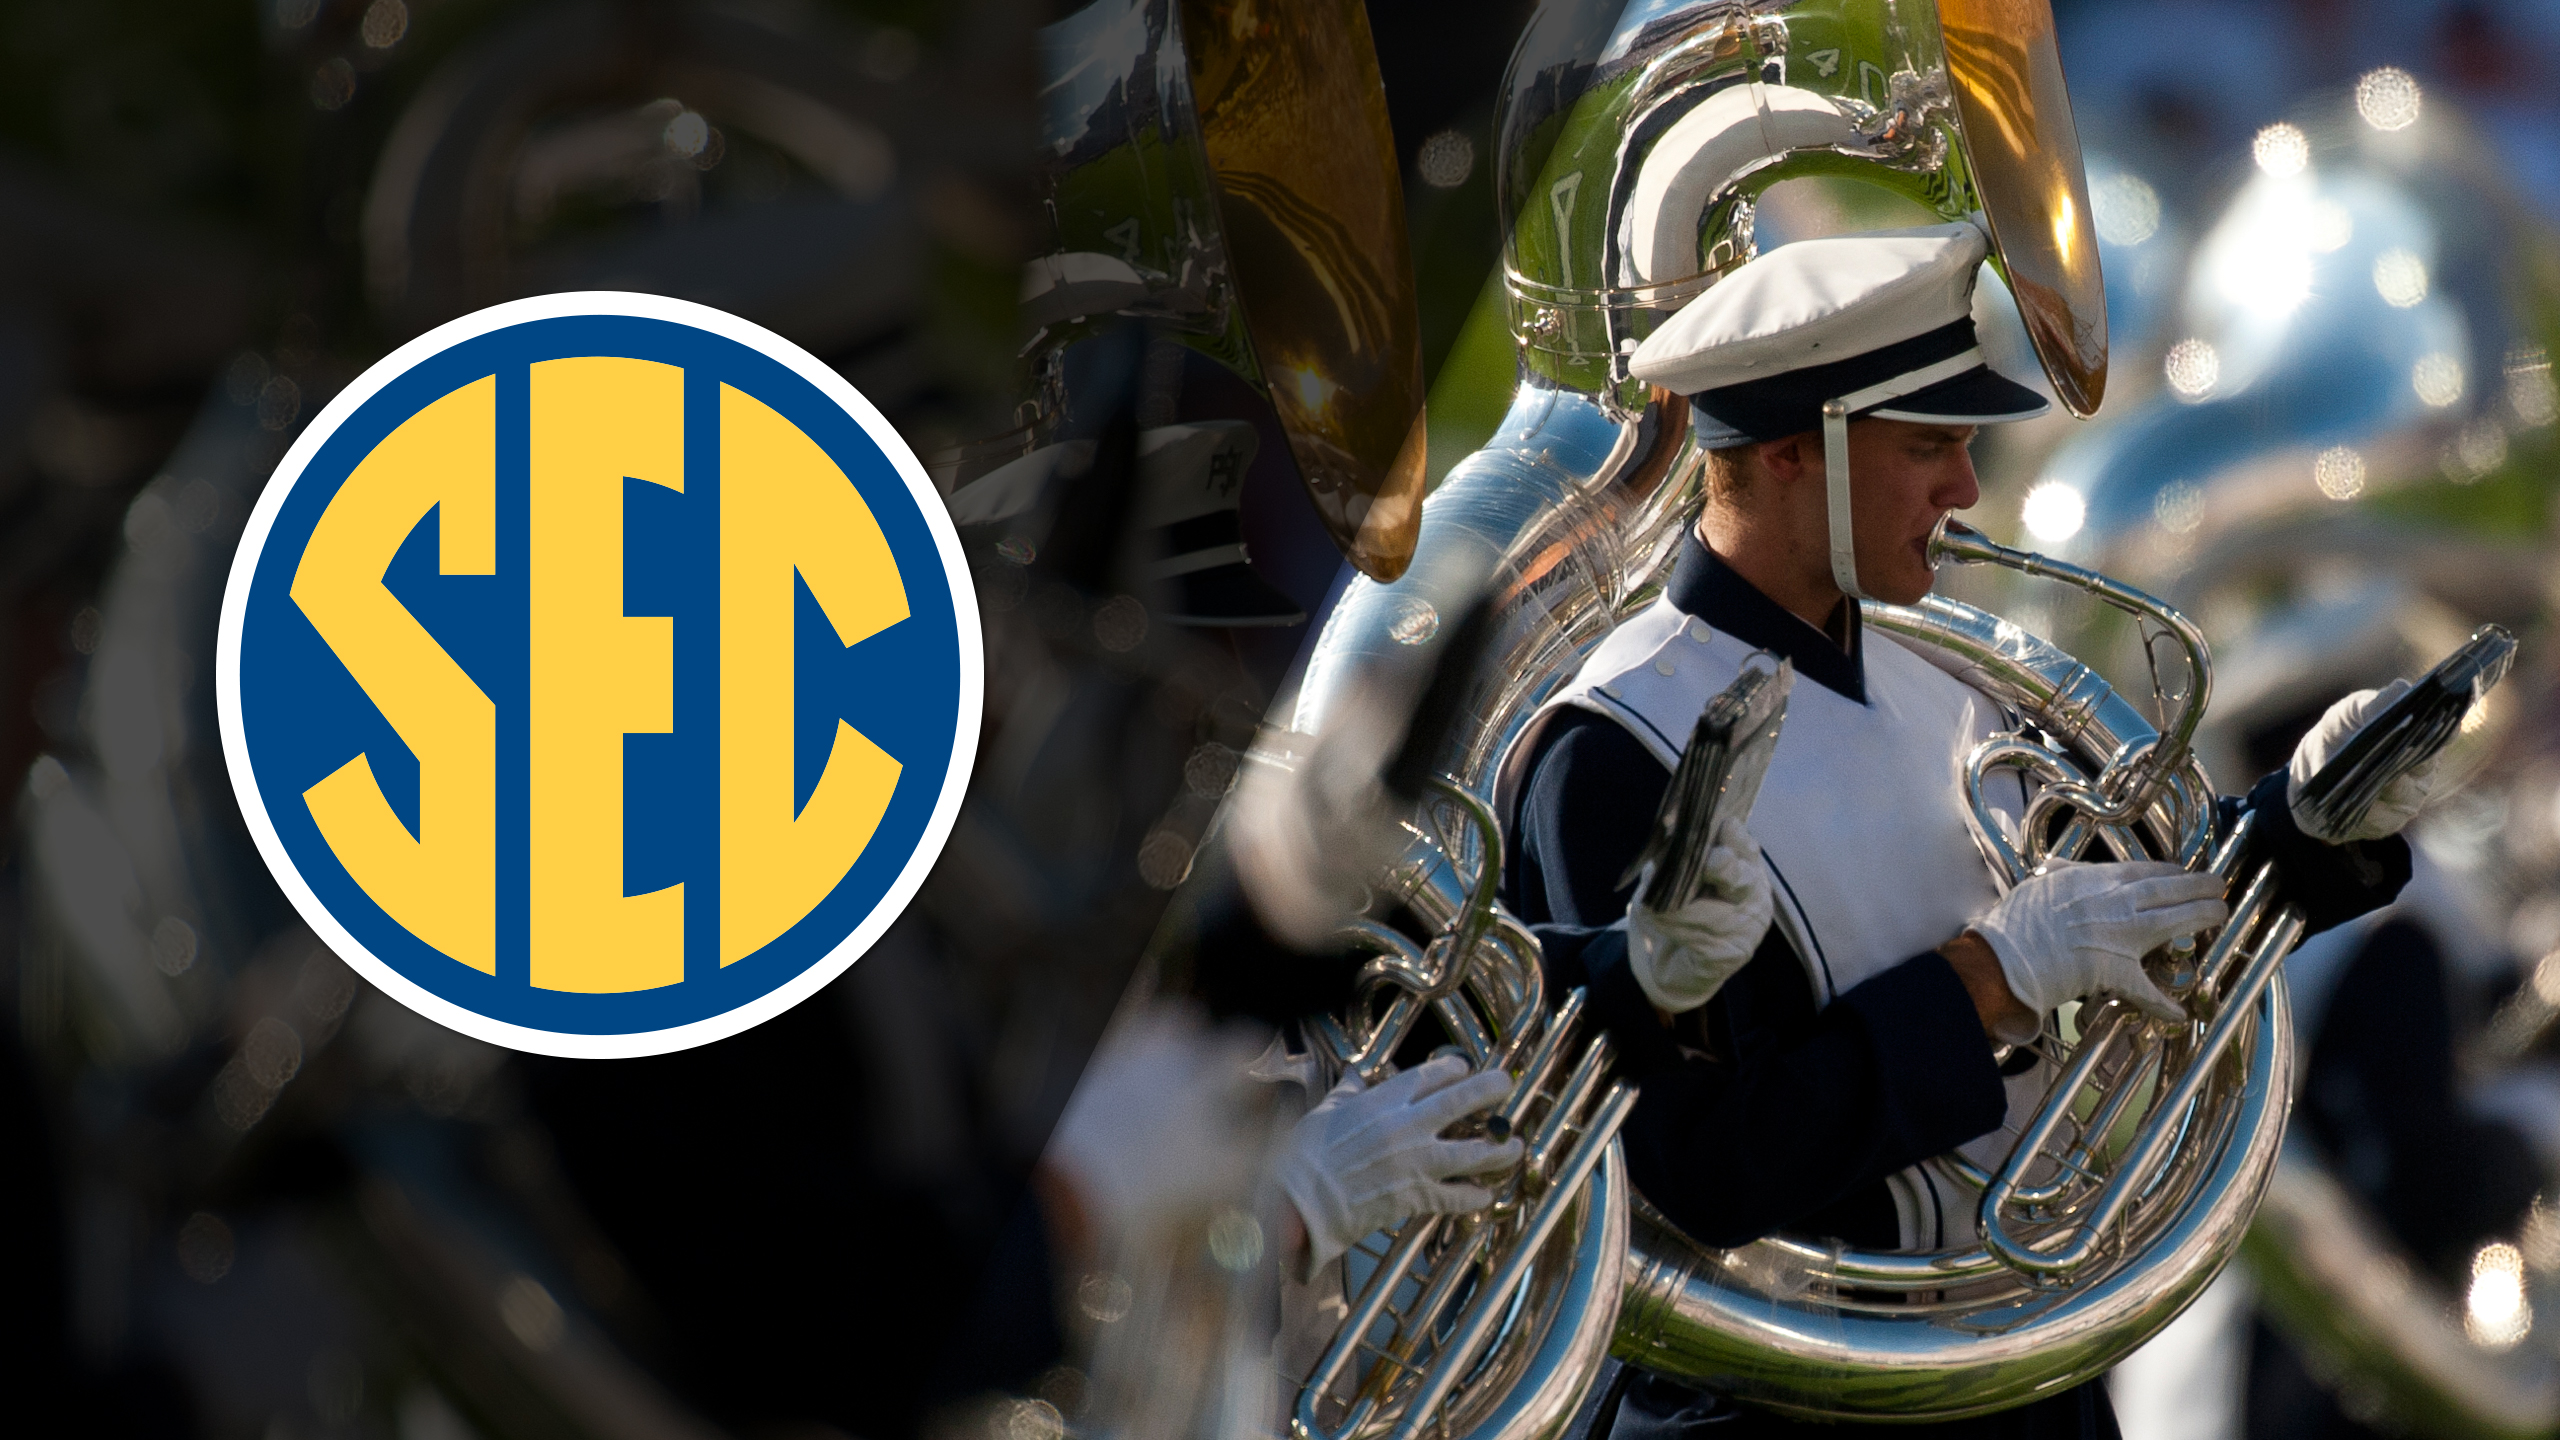 SEC Halftime Band Performances at Tennessee